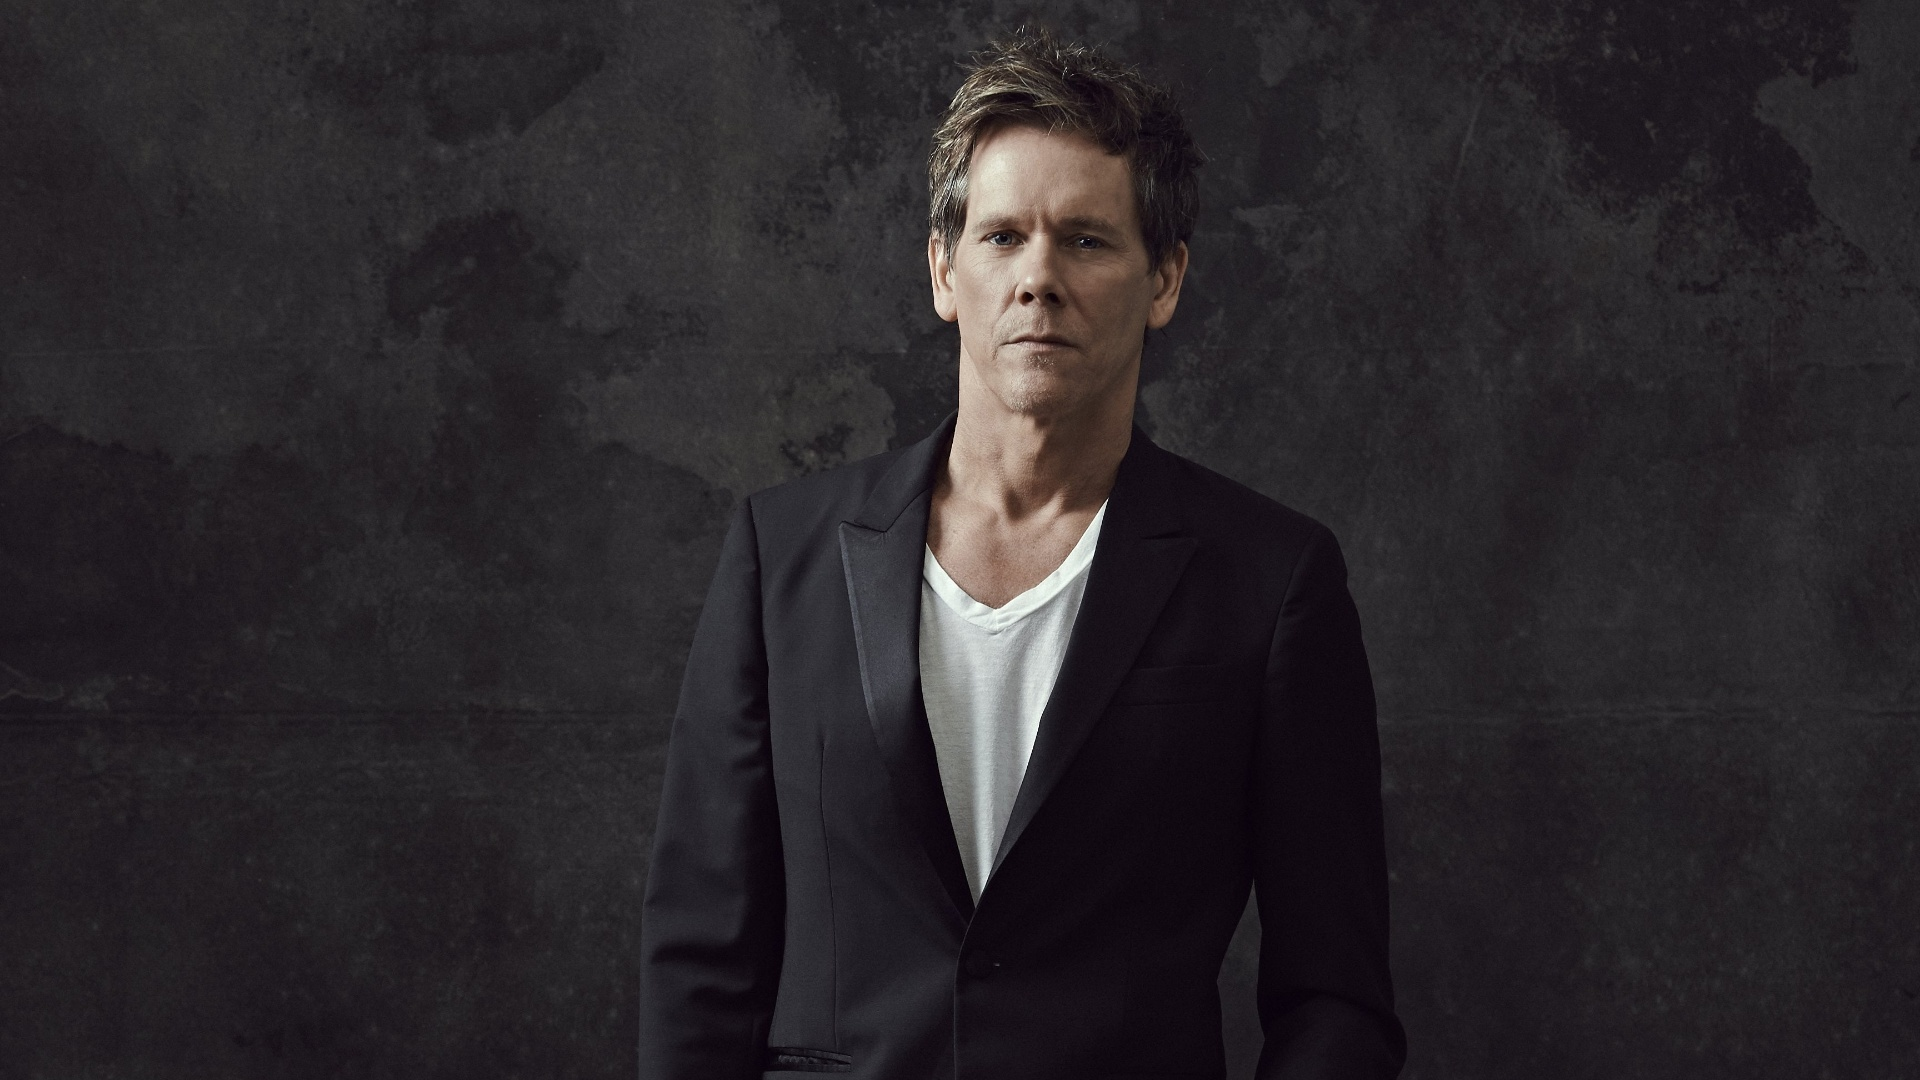 Kevin Bacon Wallpapers Images Photos Pictures Backgrounds 1920x1080